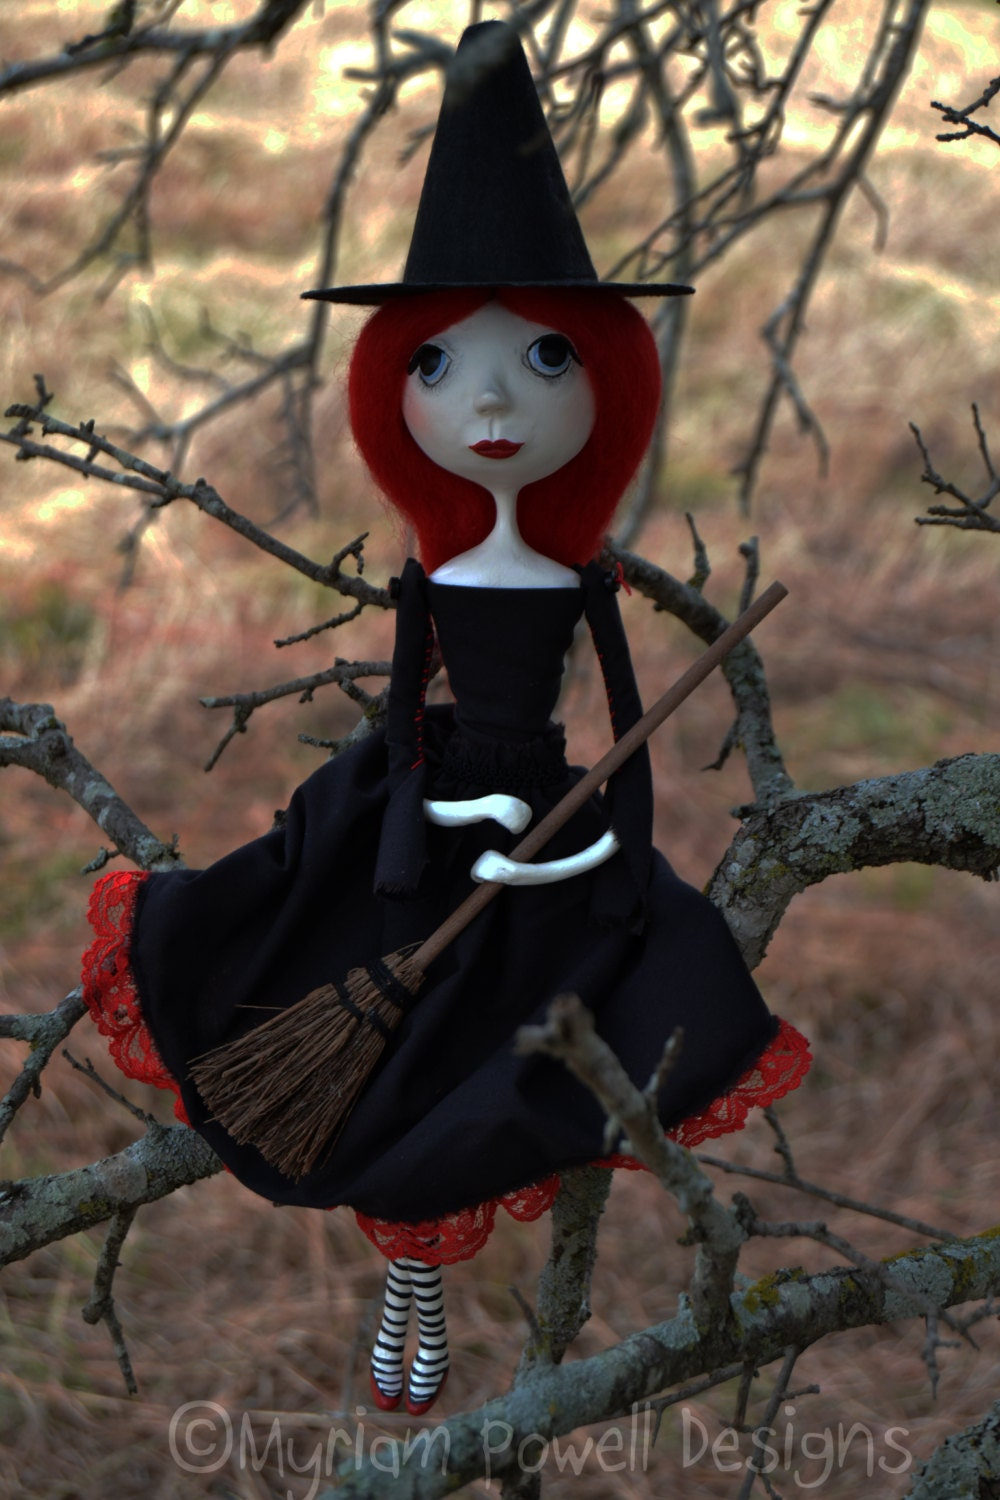 Witch Art Doll Halloween Art Doll Witch By Myriampowelldesigns